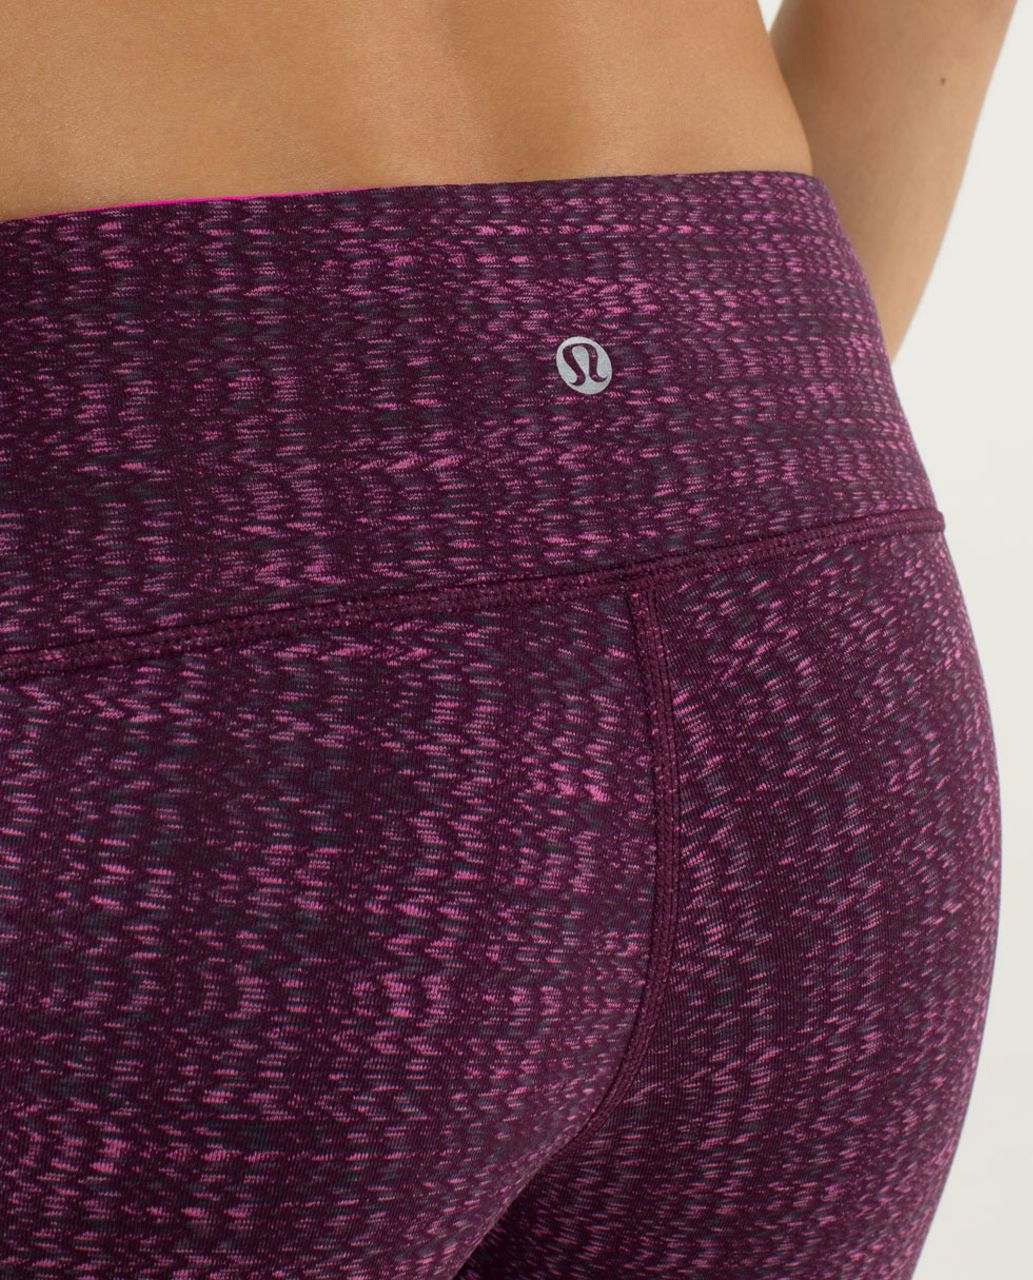 Lululemon Wunder Under Pant *Textured - Ziggy Wee August Glo / Raspberry Glo Light